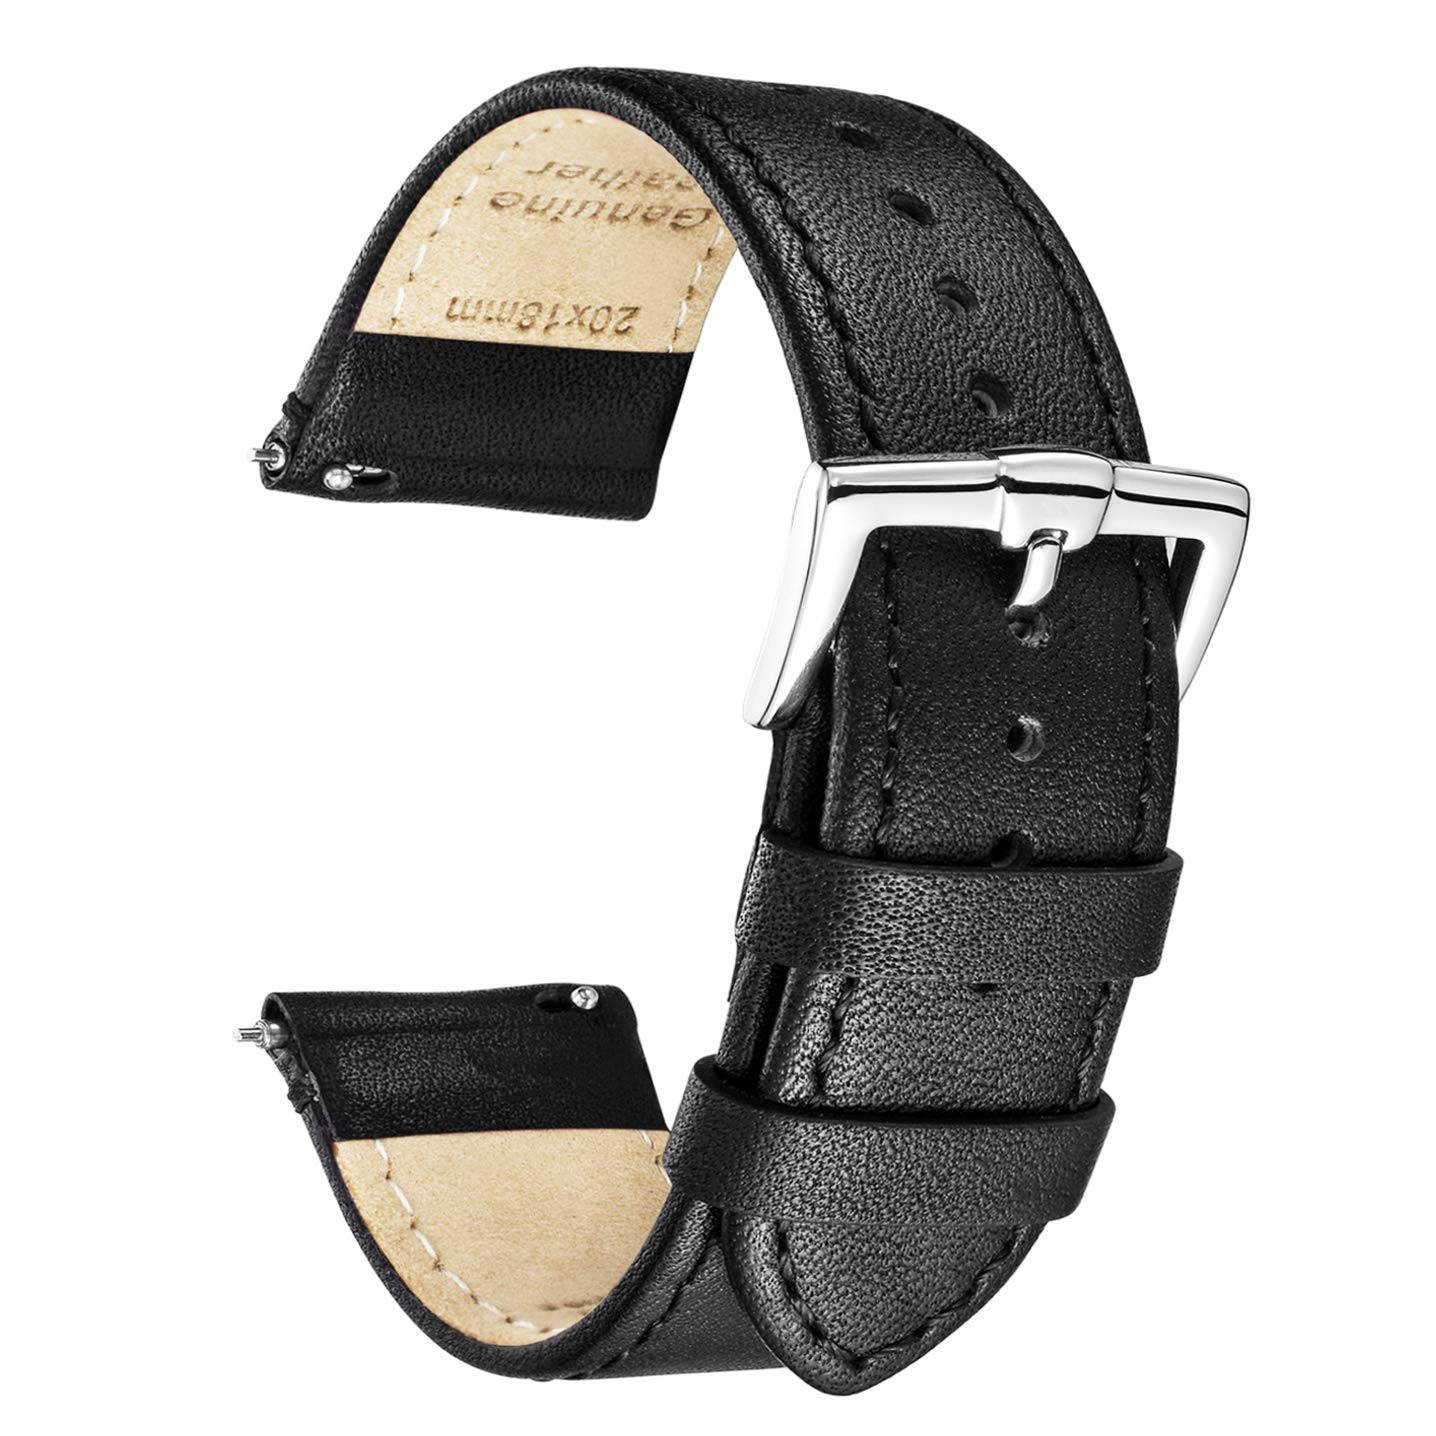 B&E Quick Release Watch Bands Top Smooth Genuine Leather Watch Strap Bracelet for Men & Women - 16mm 18mm 19mm 20mm 22mm 24mm by BRISMASSI ESETTI